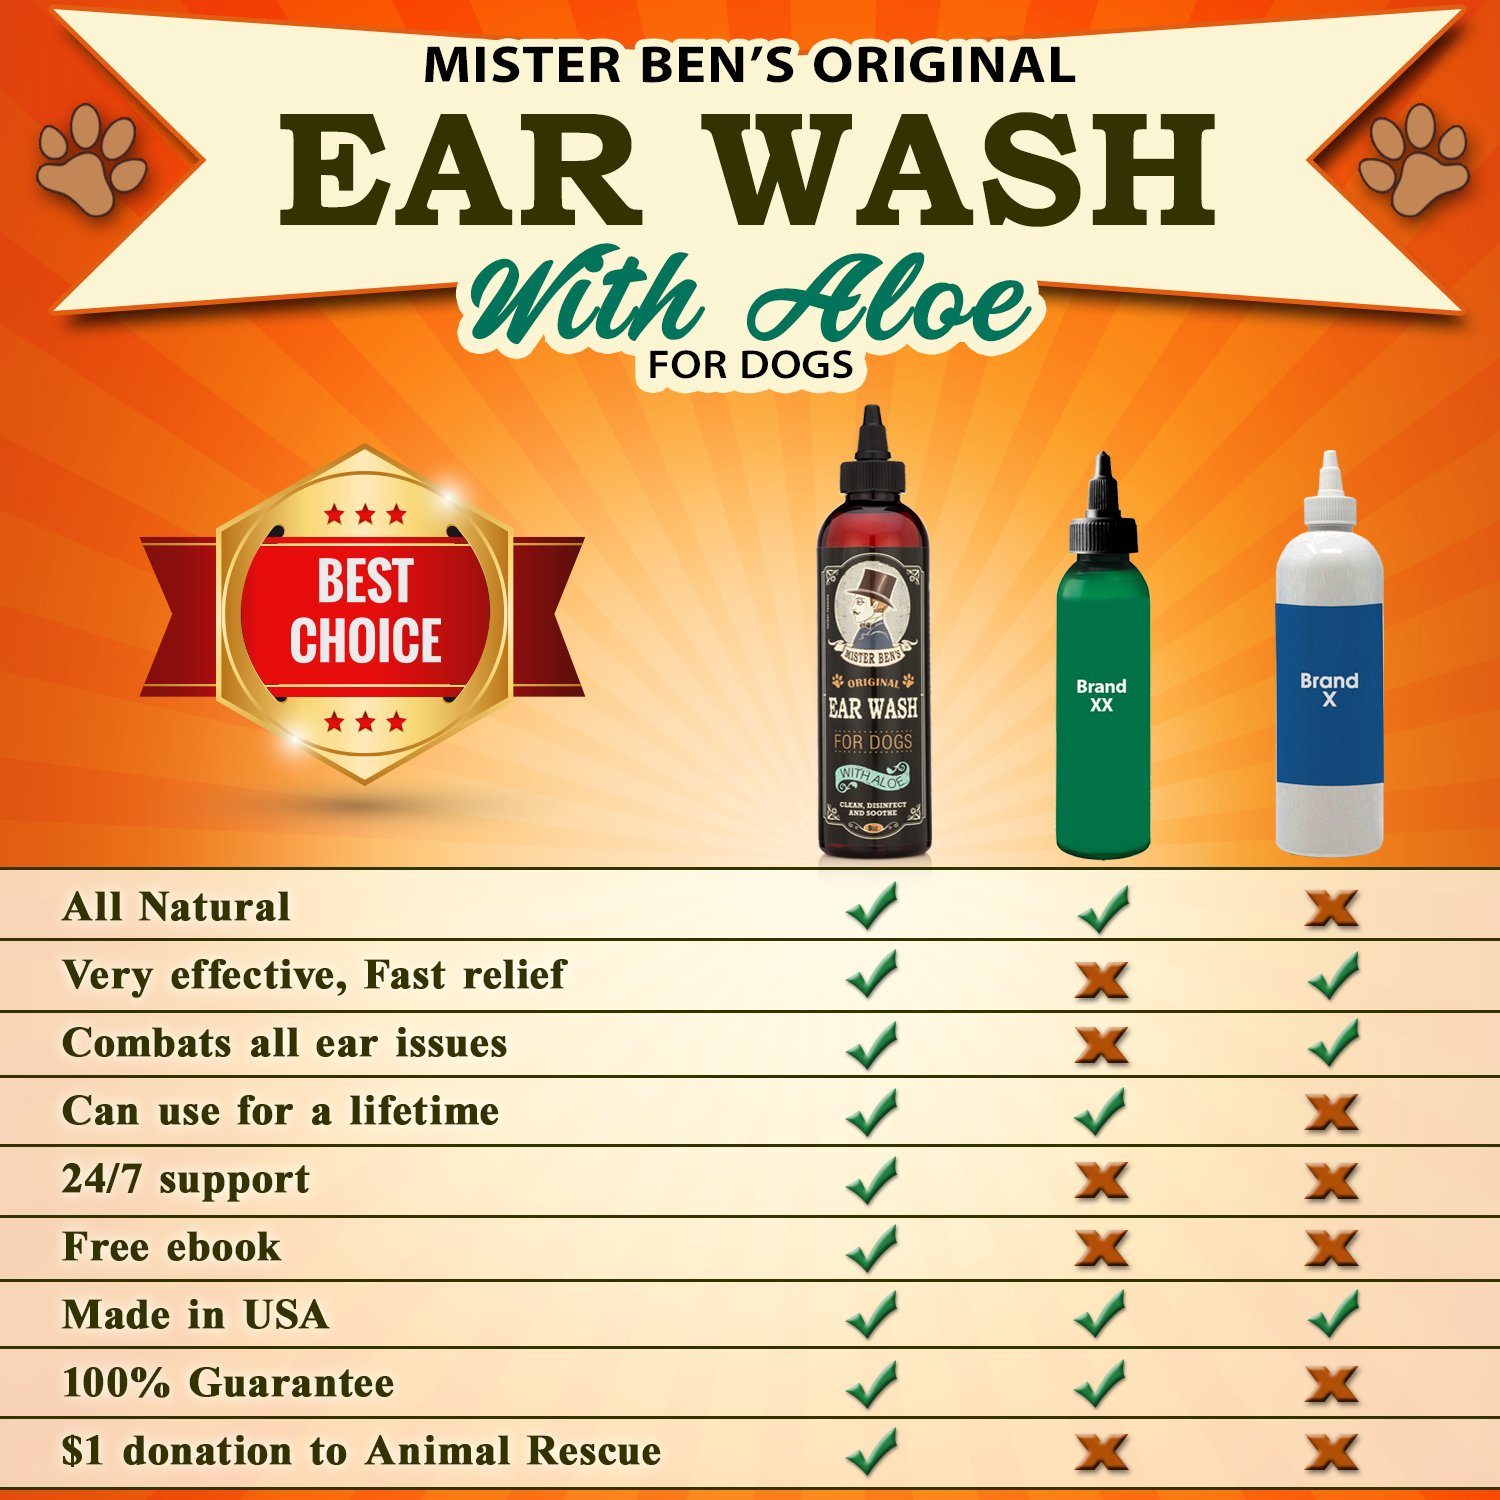 Mister Ben's MOST EFFECTIVE DOG EAR WASH Voted the Best Dog Ear Cleaner - Provides FAST RELIEF from Dog Ear Infections, Irritations, Itching, Odors, Bacteria, Mites, Fungus & Yeast by Mister Ben's (Image #4)